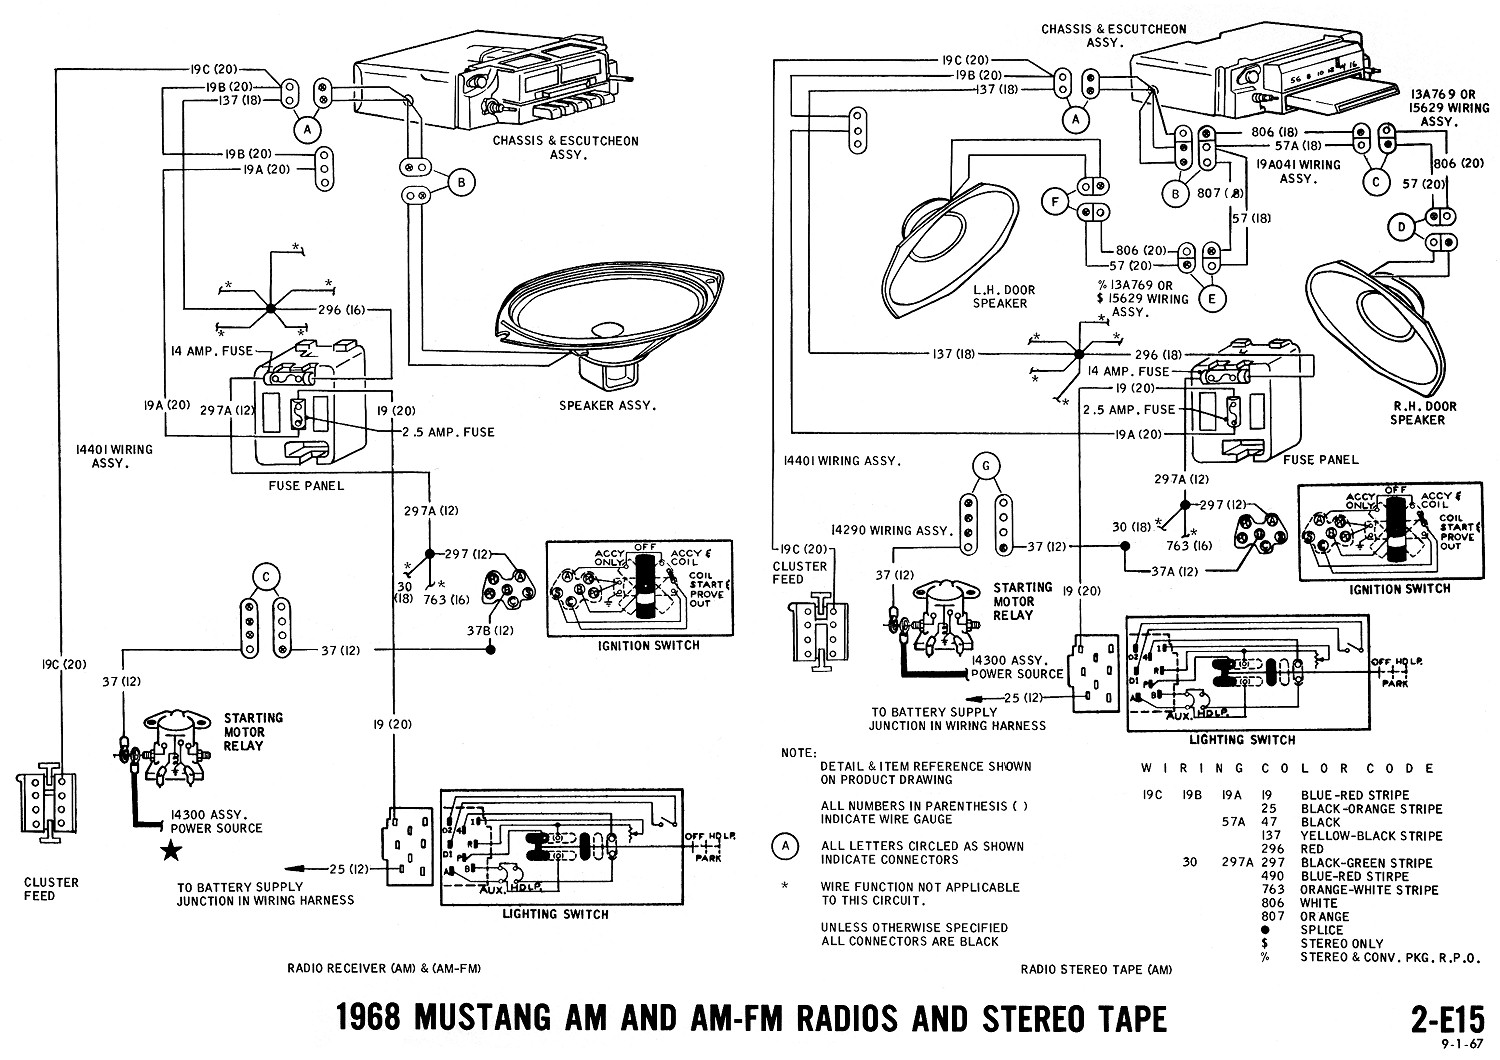 E15 1968 mustang wiring diagrams evolving software 2007 mustang gt stereo wiring diagram at metegol.co